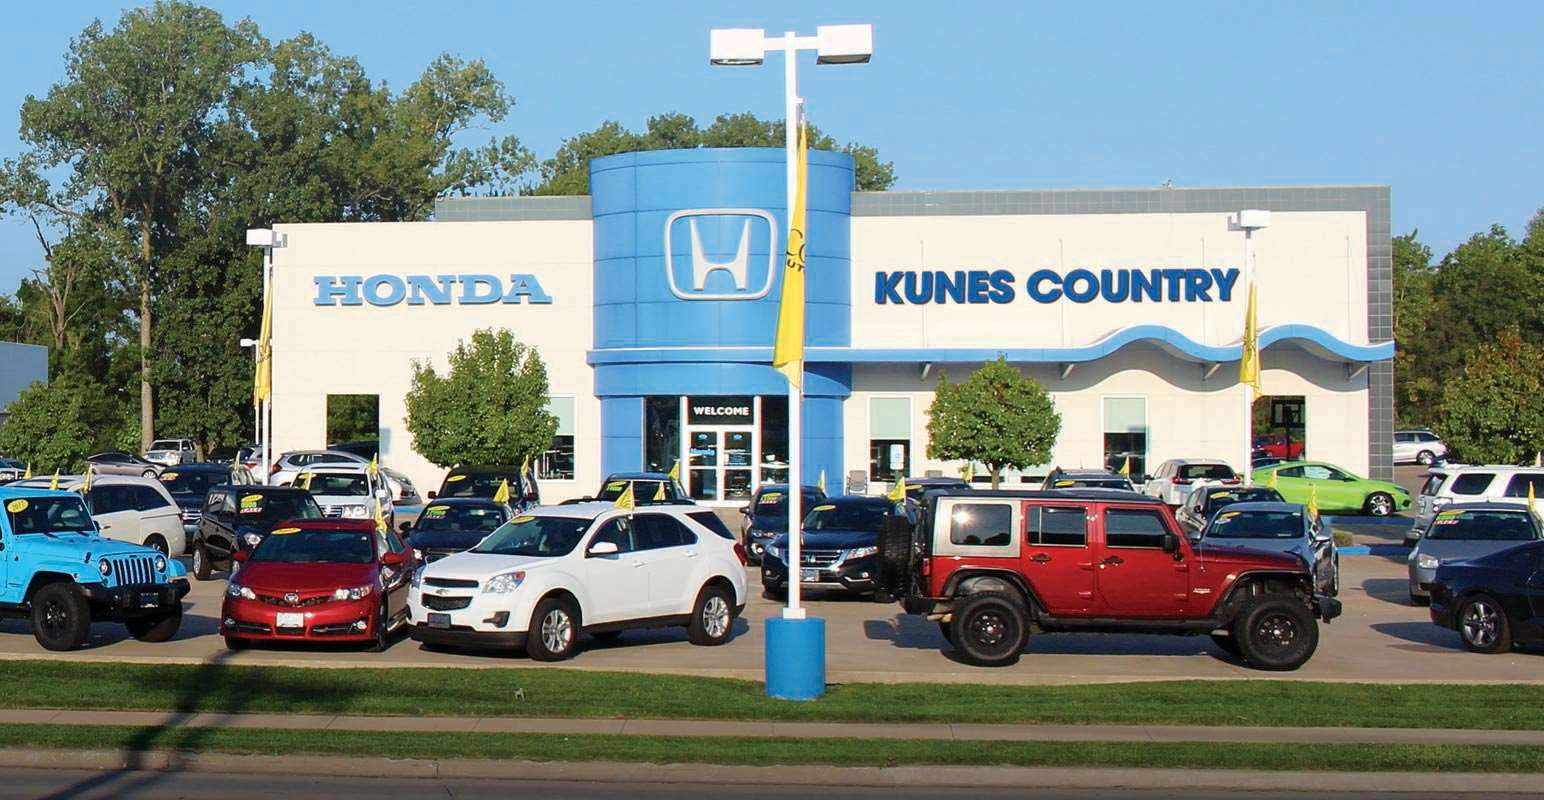 kunes country honda  quincy  honda dealership quincy il